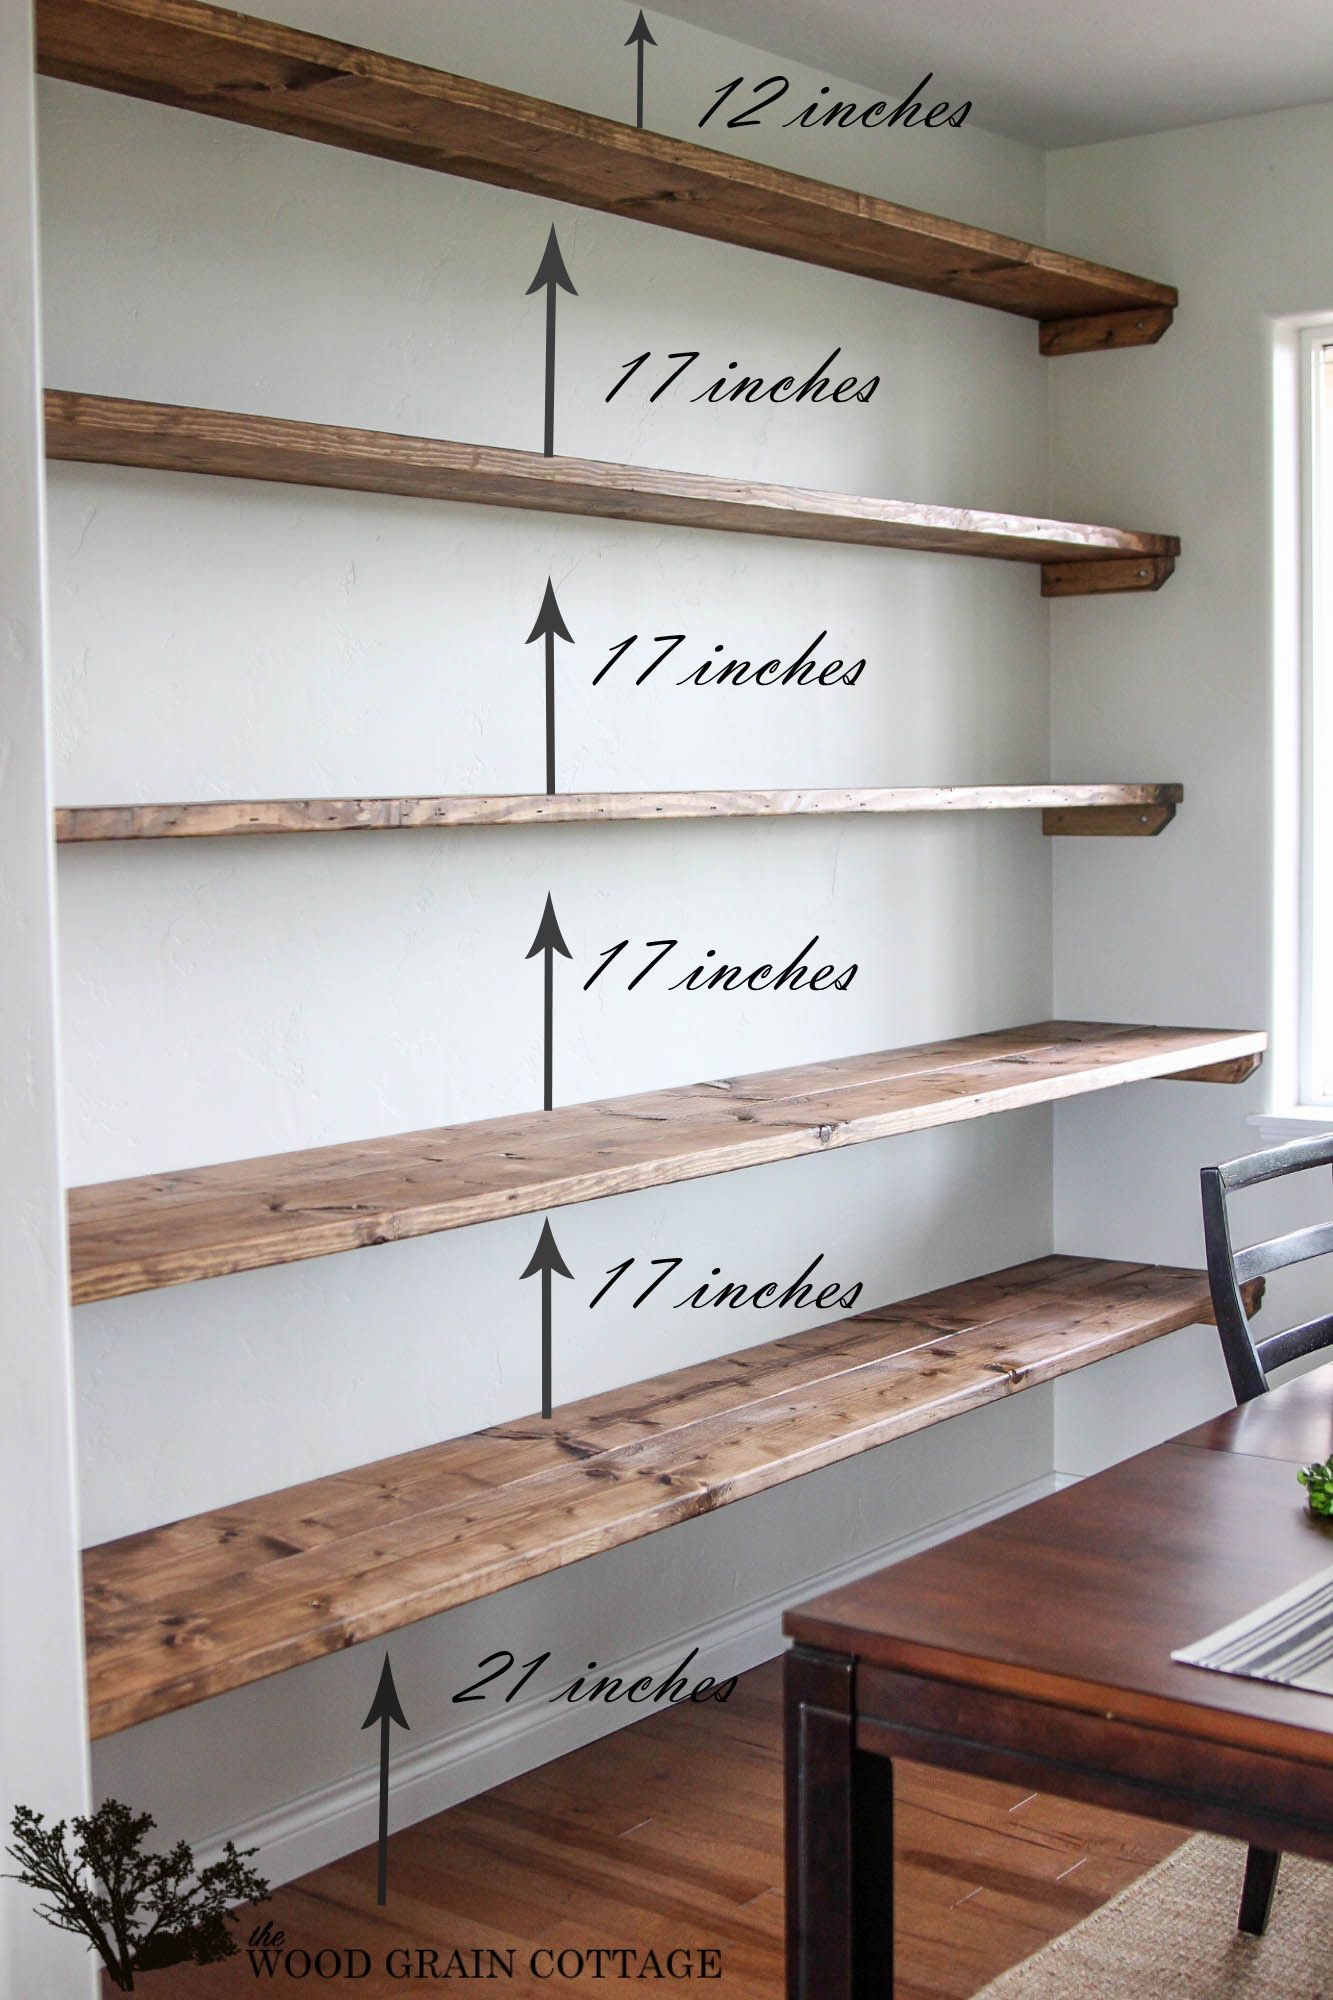 office shelving ideas. DIY Dining Room Open Shelving By The Wood Grain Cottage Office Ideas